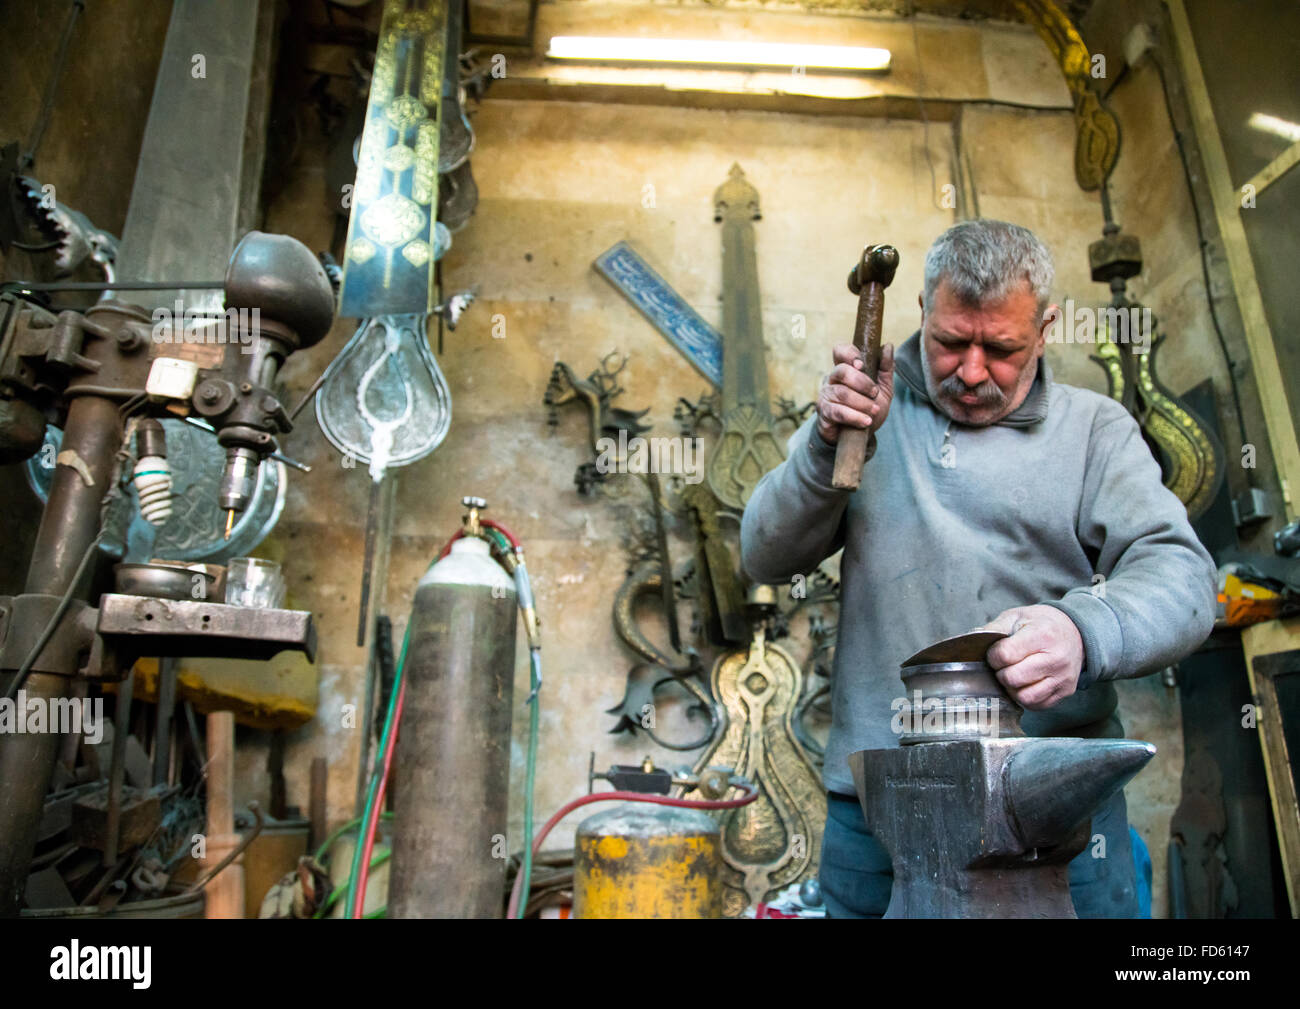 master safar fooladgar creating an alam in his workshop, Central district, Tehran, Iran - Stock Image